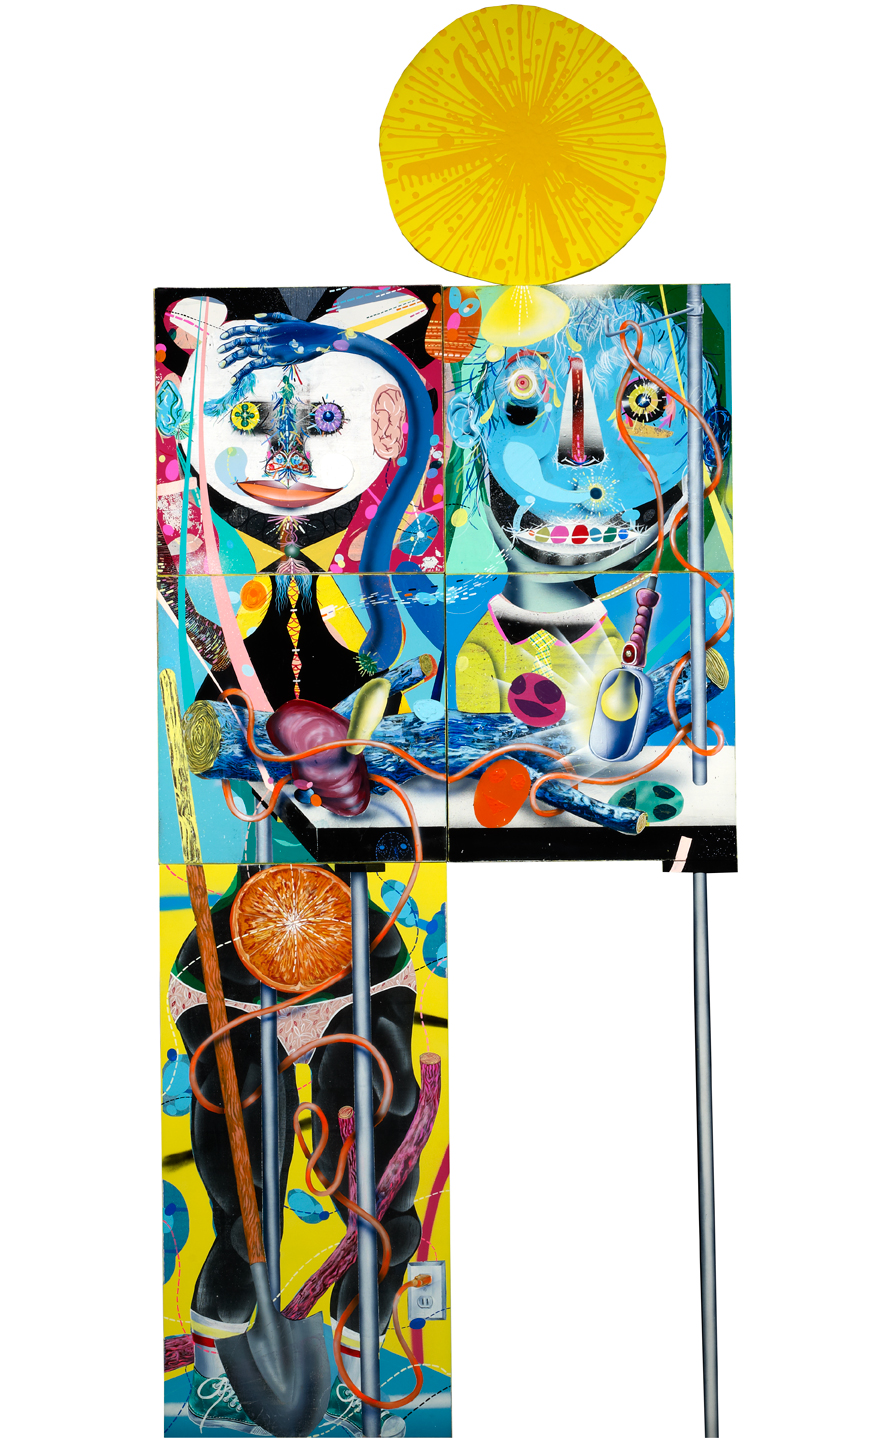 Clayton Brothers    Absurdity in Natural Light    Mixed media on canvas and wood panel  2013  100 x 40 In  $25,000.00